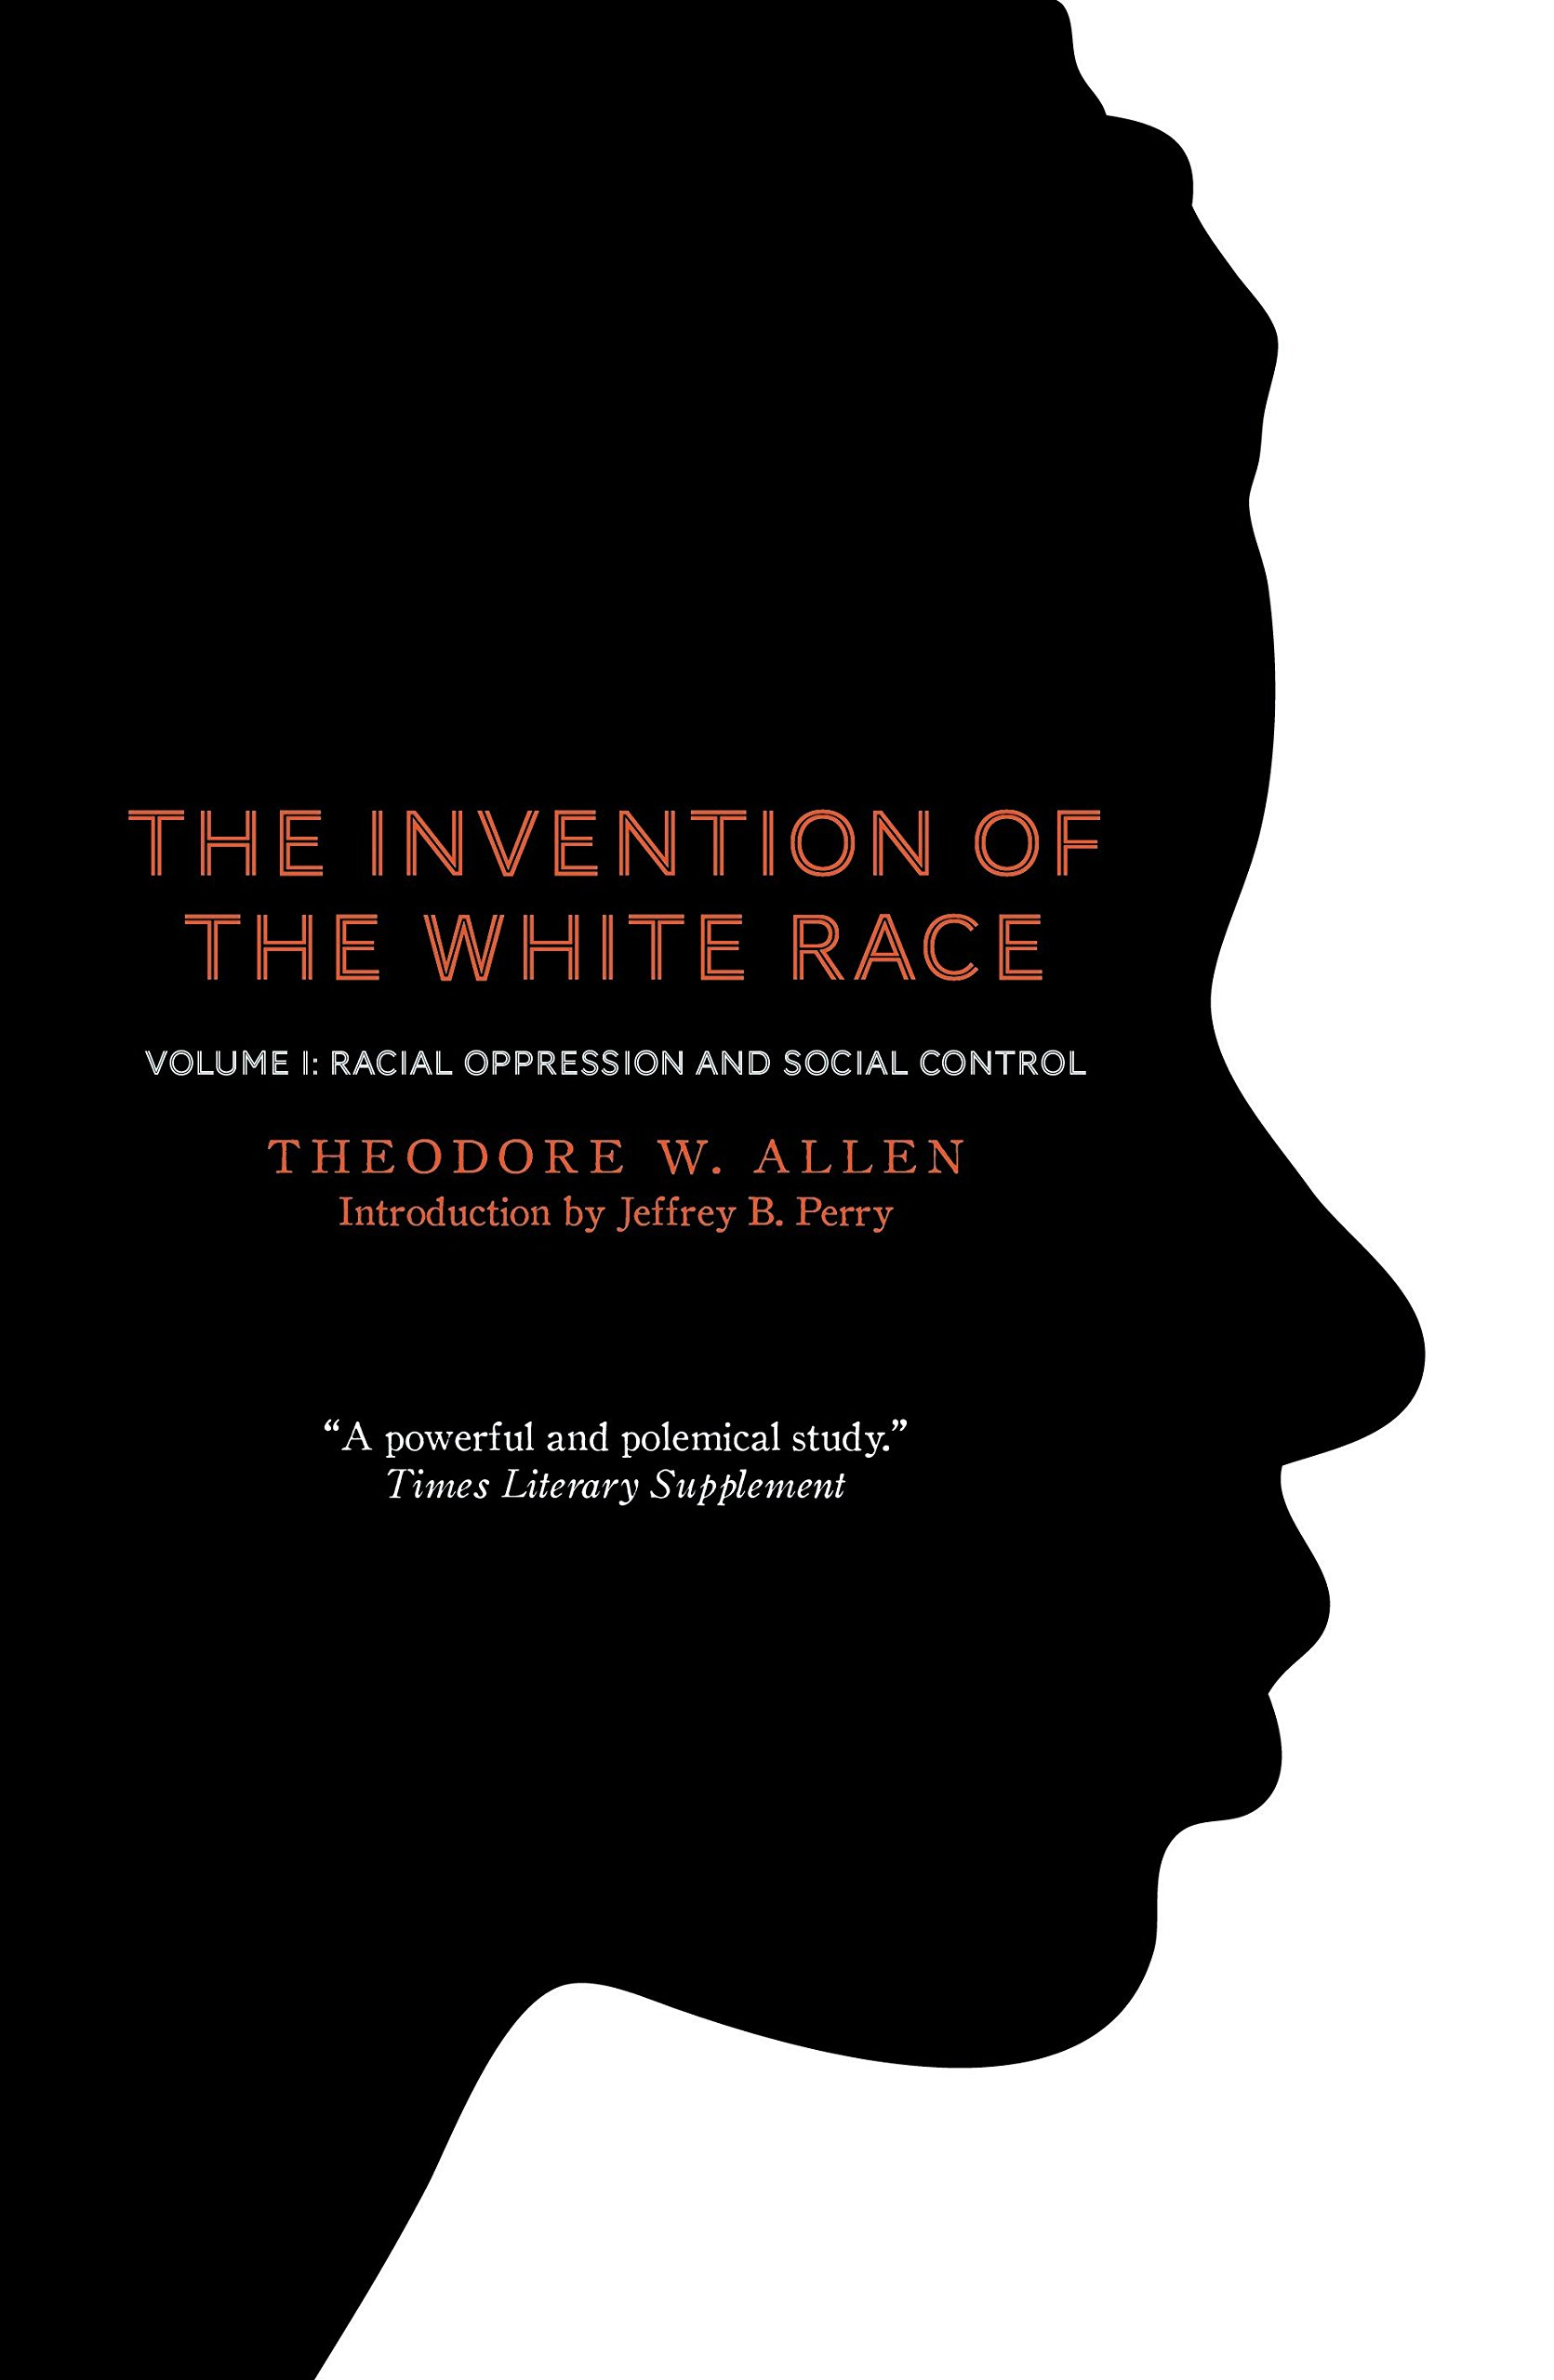 Allen Invention of White Race cover art